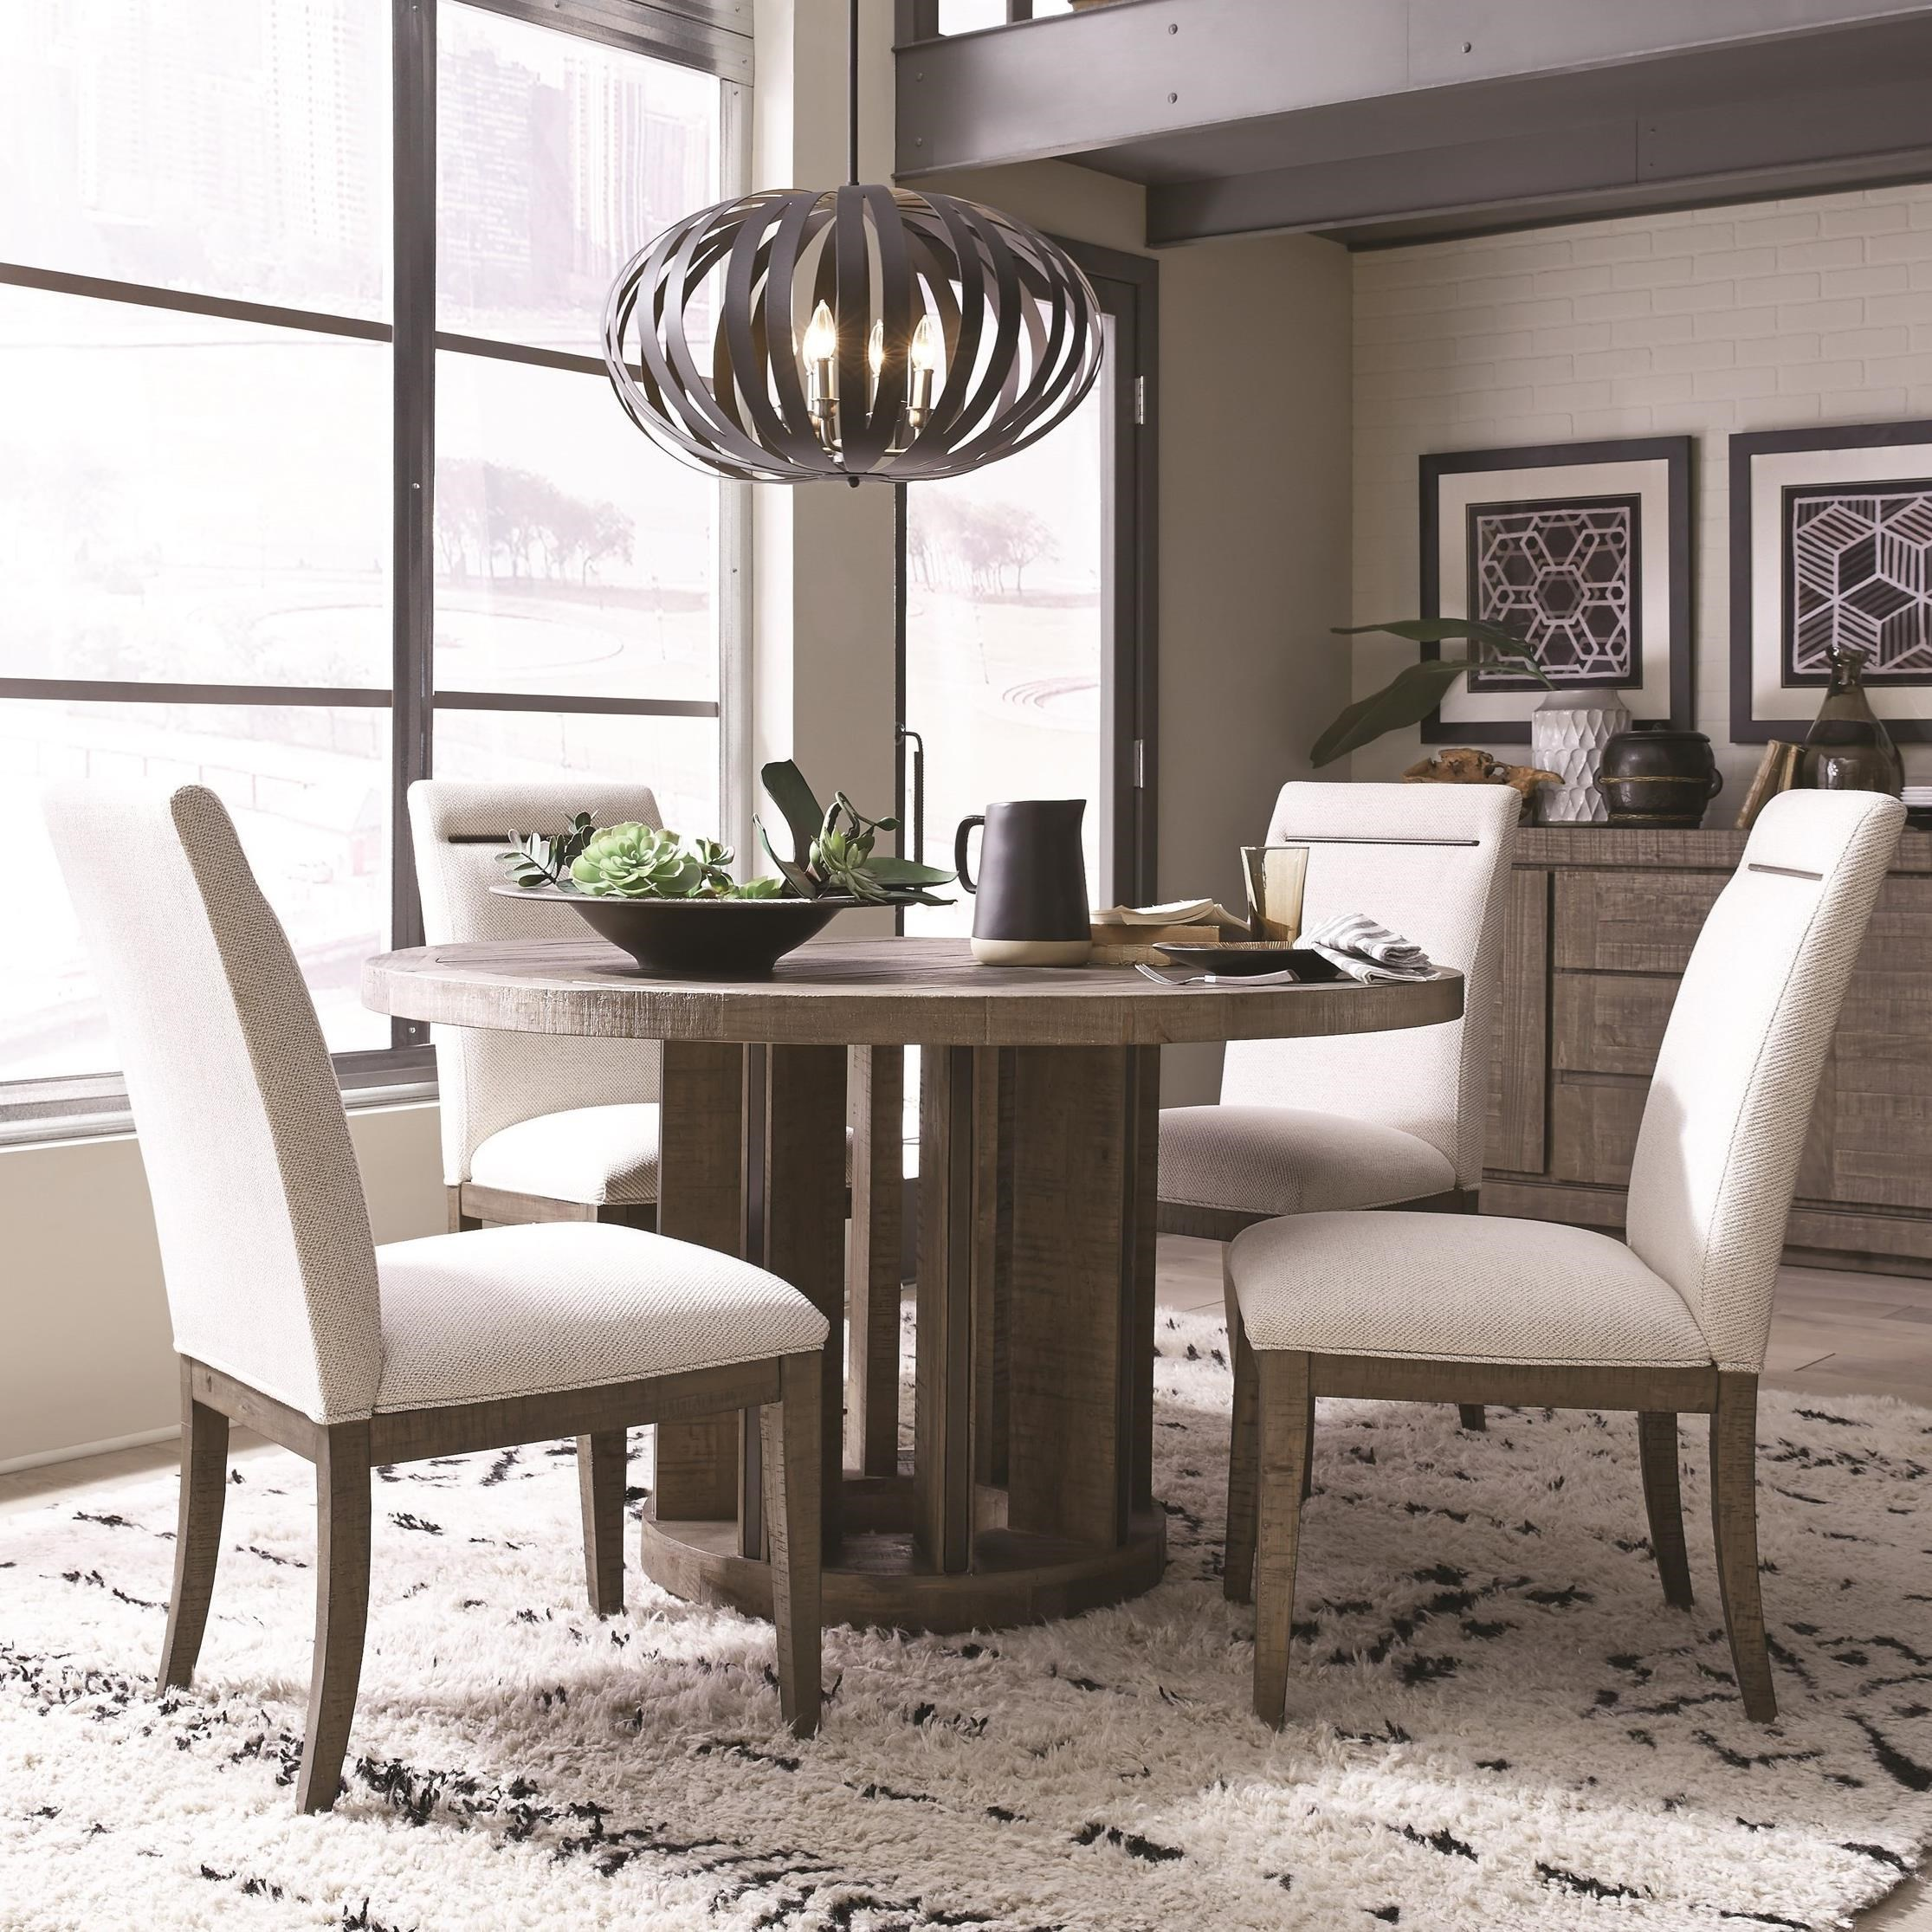 Granada Hills Contemporary Rustic 5 Piece Dining Set By Magnussen Home